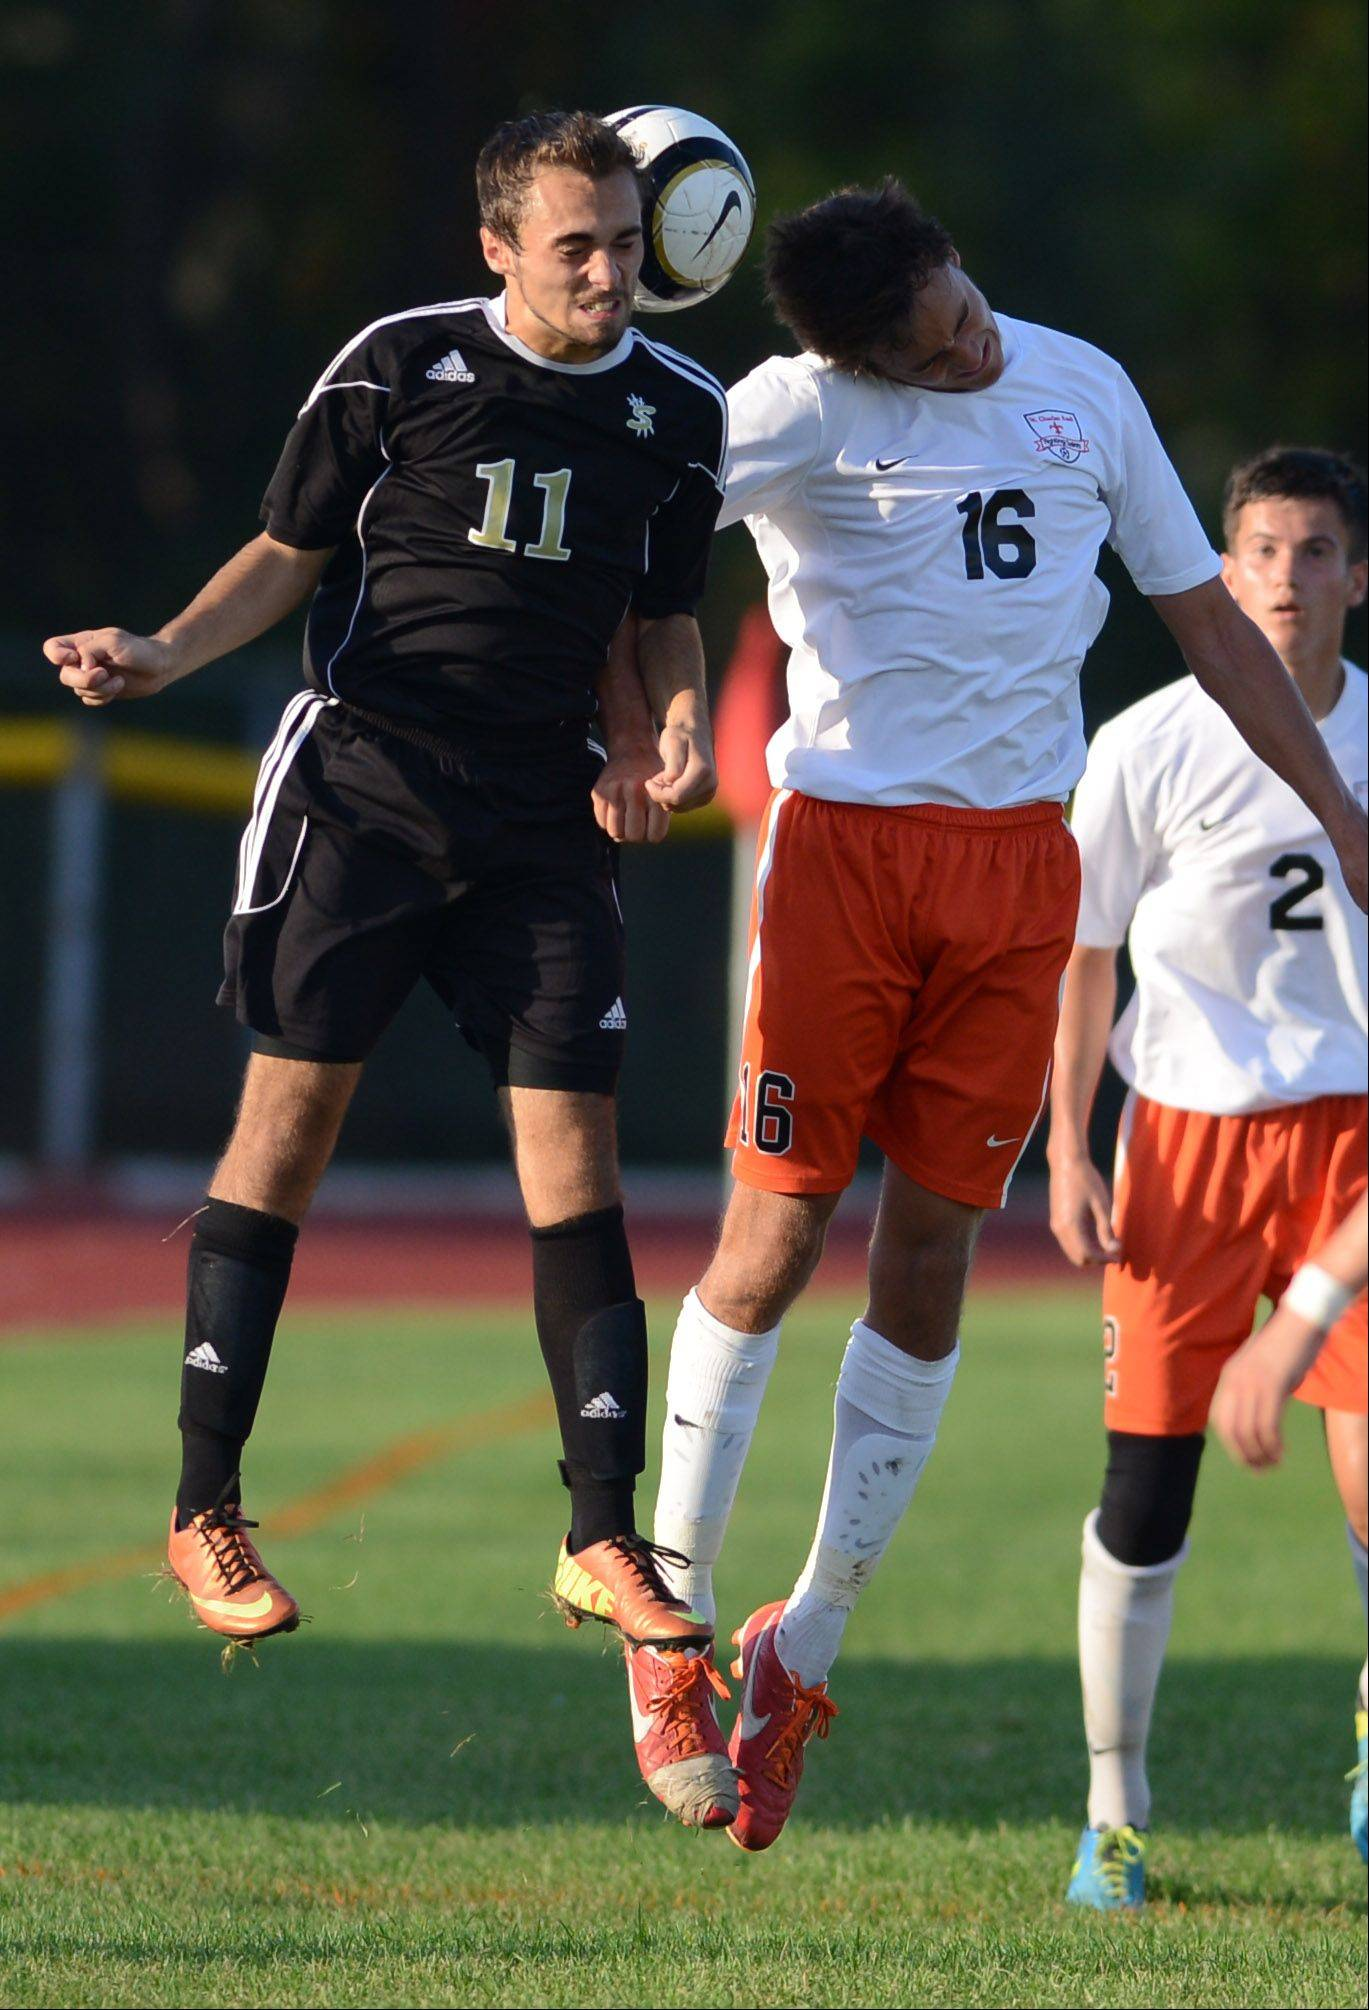 Streamwood's Brandon Malpartida and St. Charles East's Jordan Moore battle for a header during Thursday's game in St. Charles.